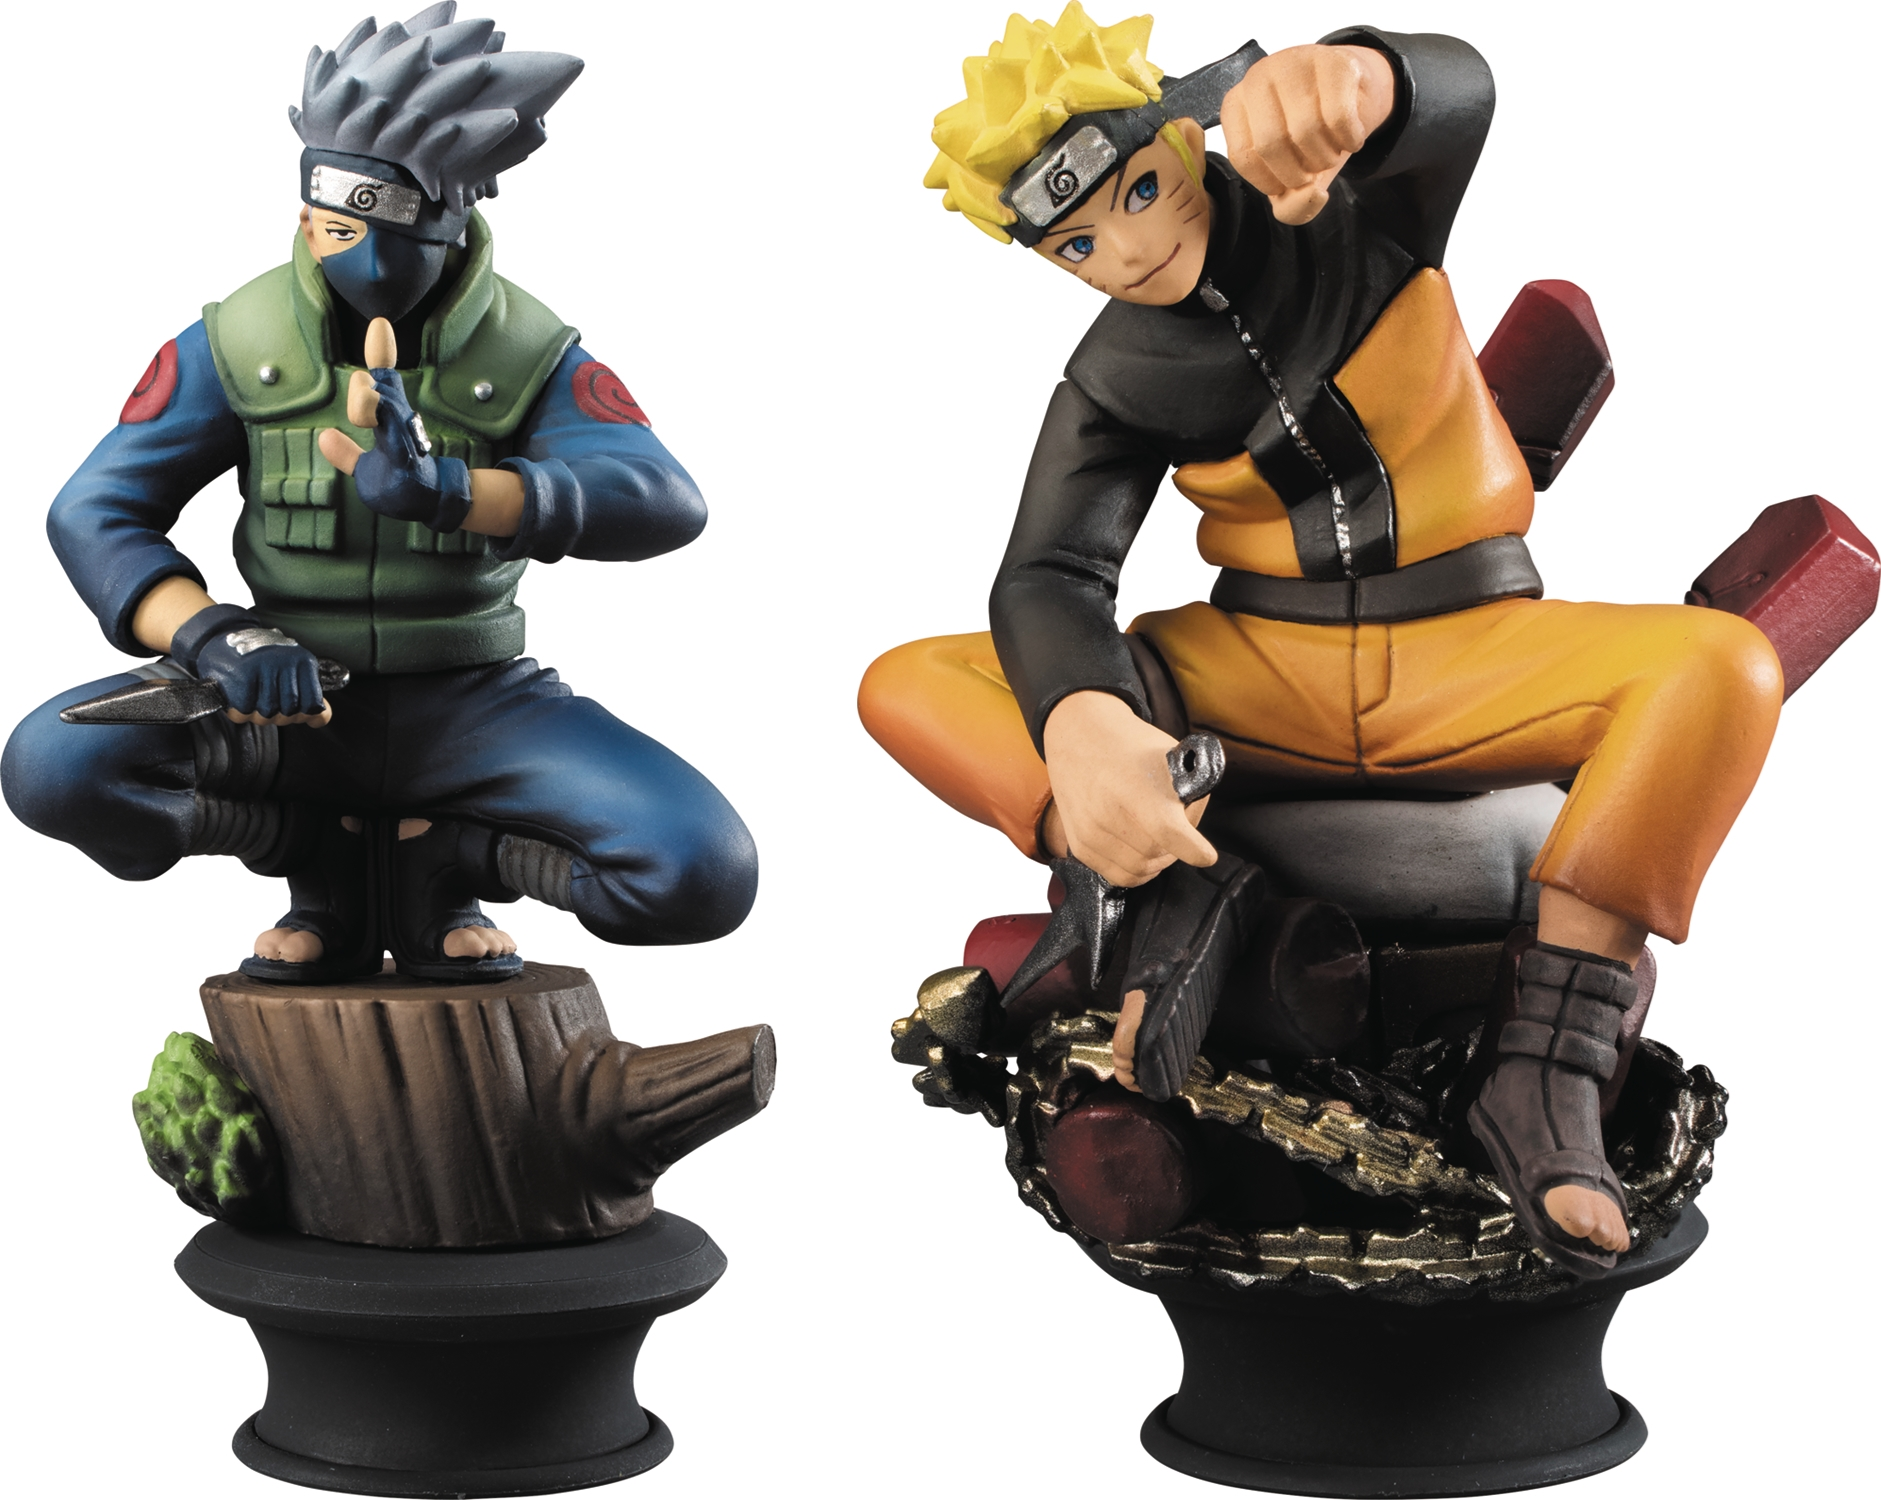 Naruto Shippuden: Chess Piece Collection- Naruto & Kakashi